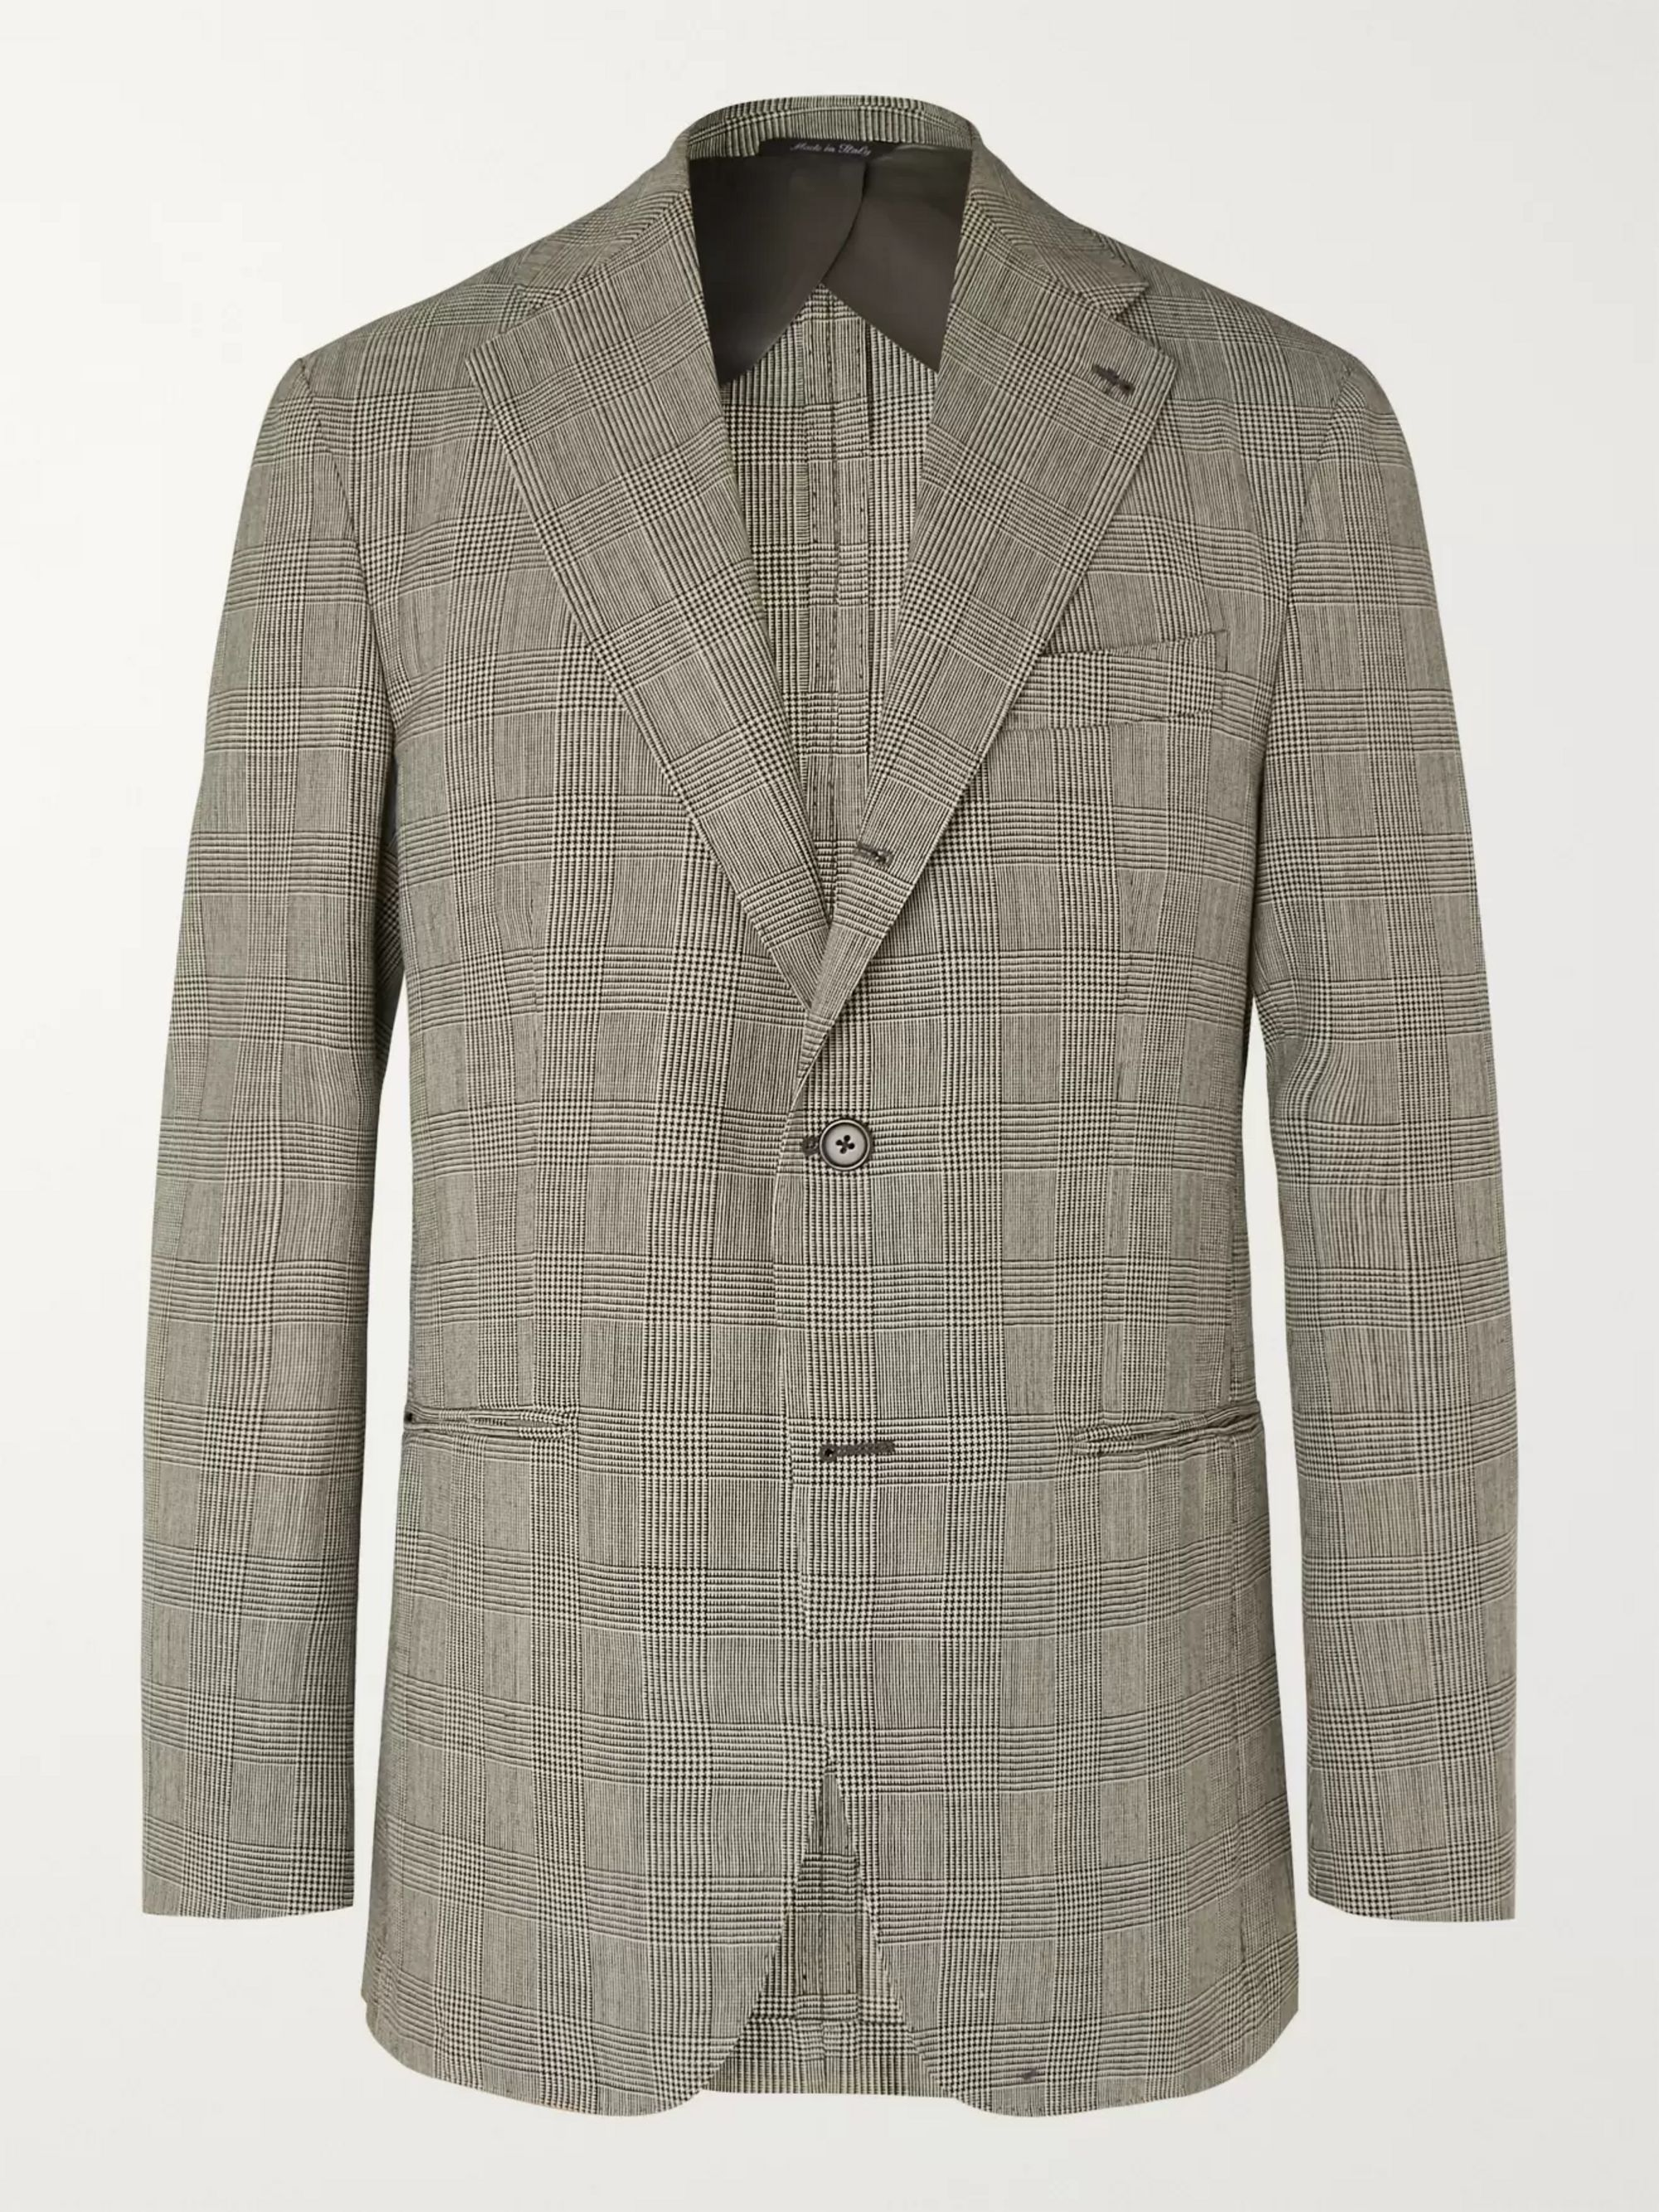 Berg & Berg Black Dan II Prince of Wales Checked Wool Blazer